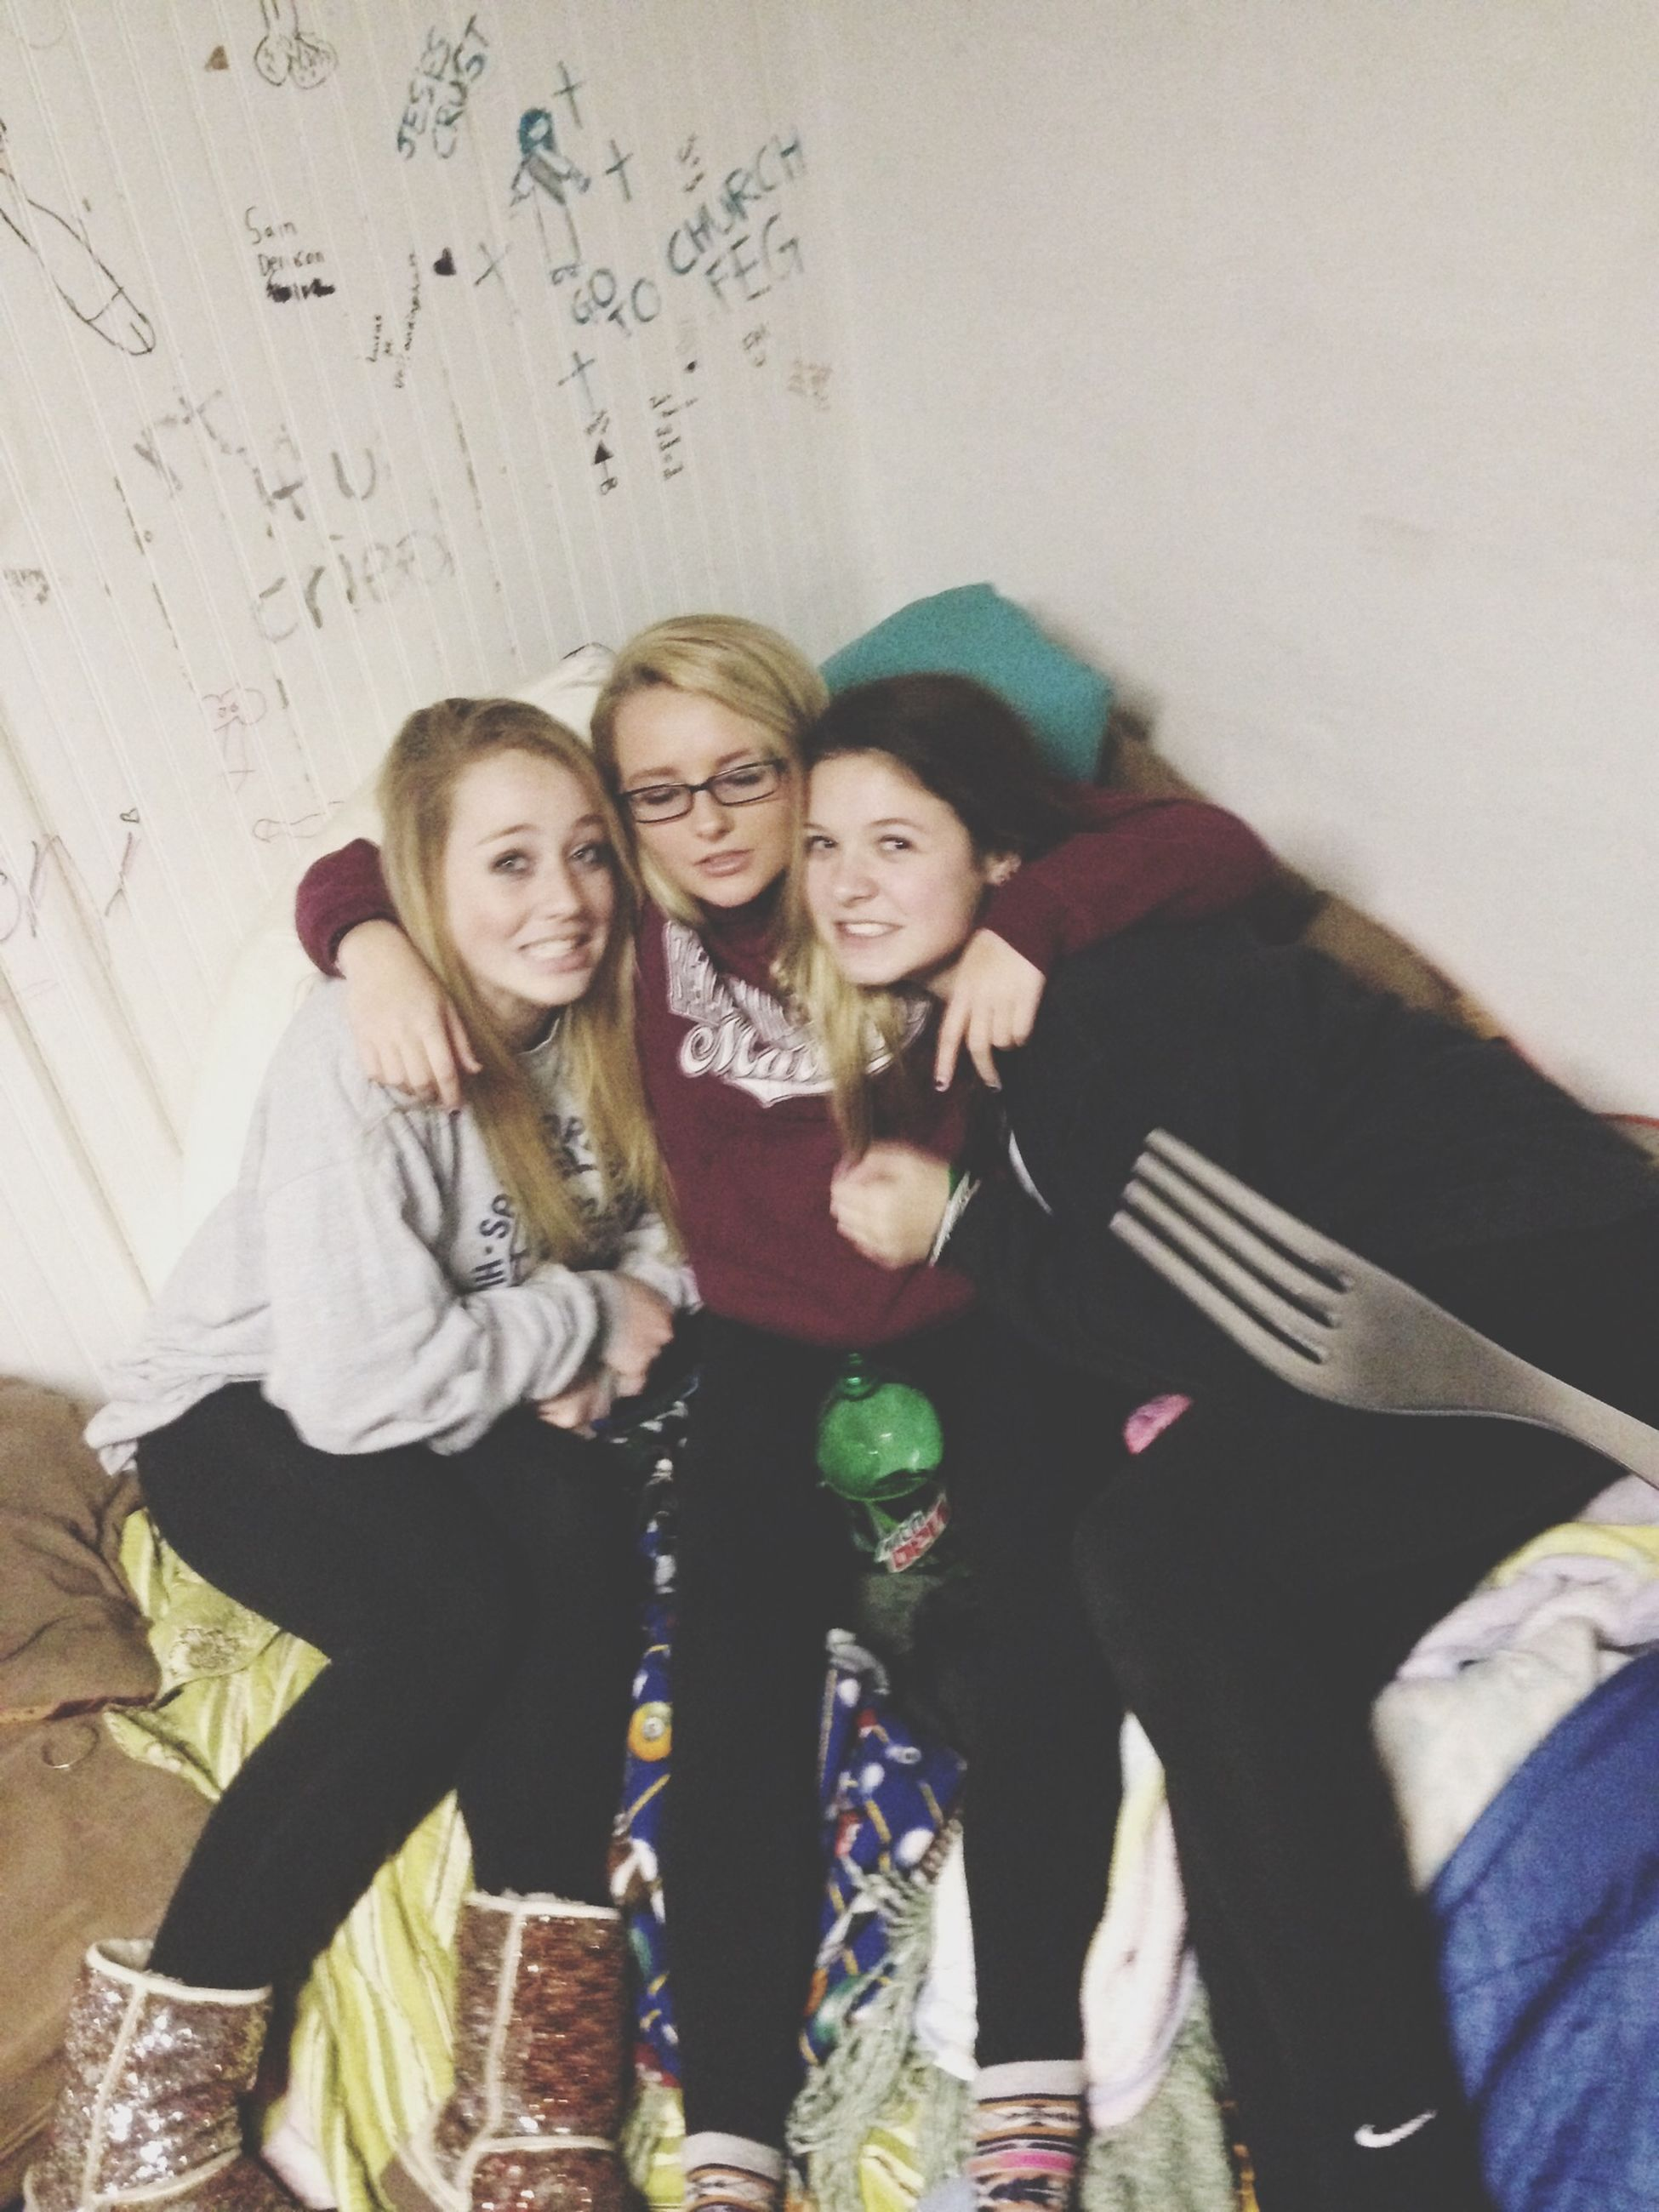 lifestyles, young adult, person, leisure activity, casual clothing, young women, front view, looking at camera, portrait, smiling, standing, three quarter length, togetherness, happiness, bonding, indoors